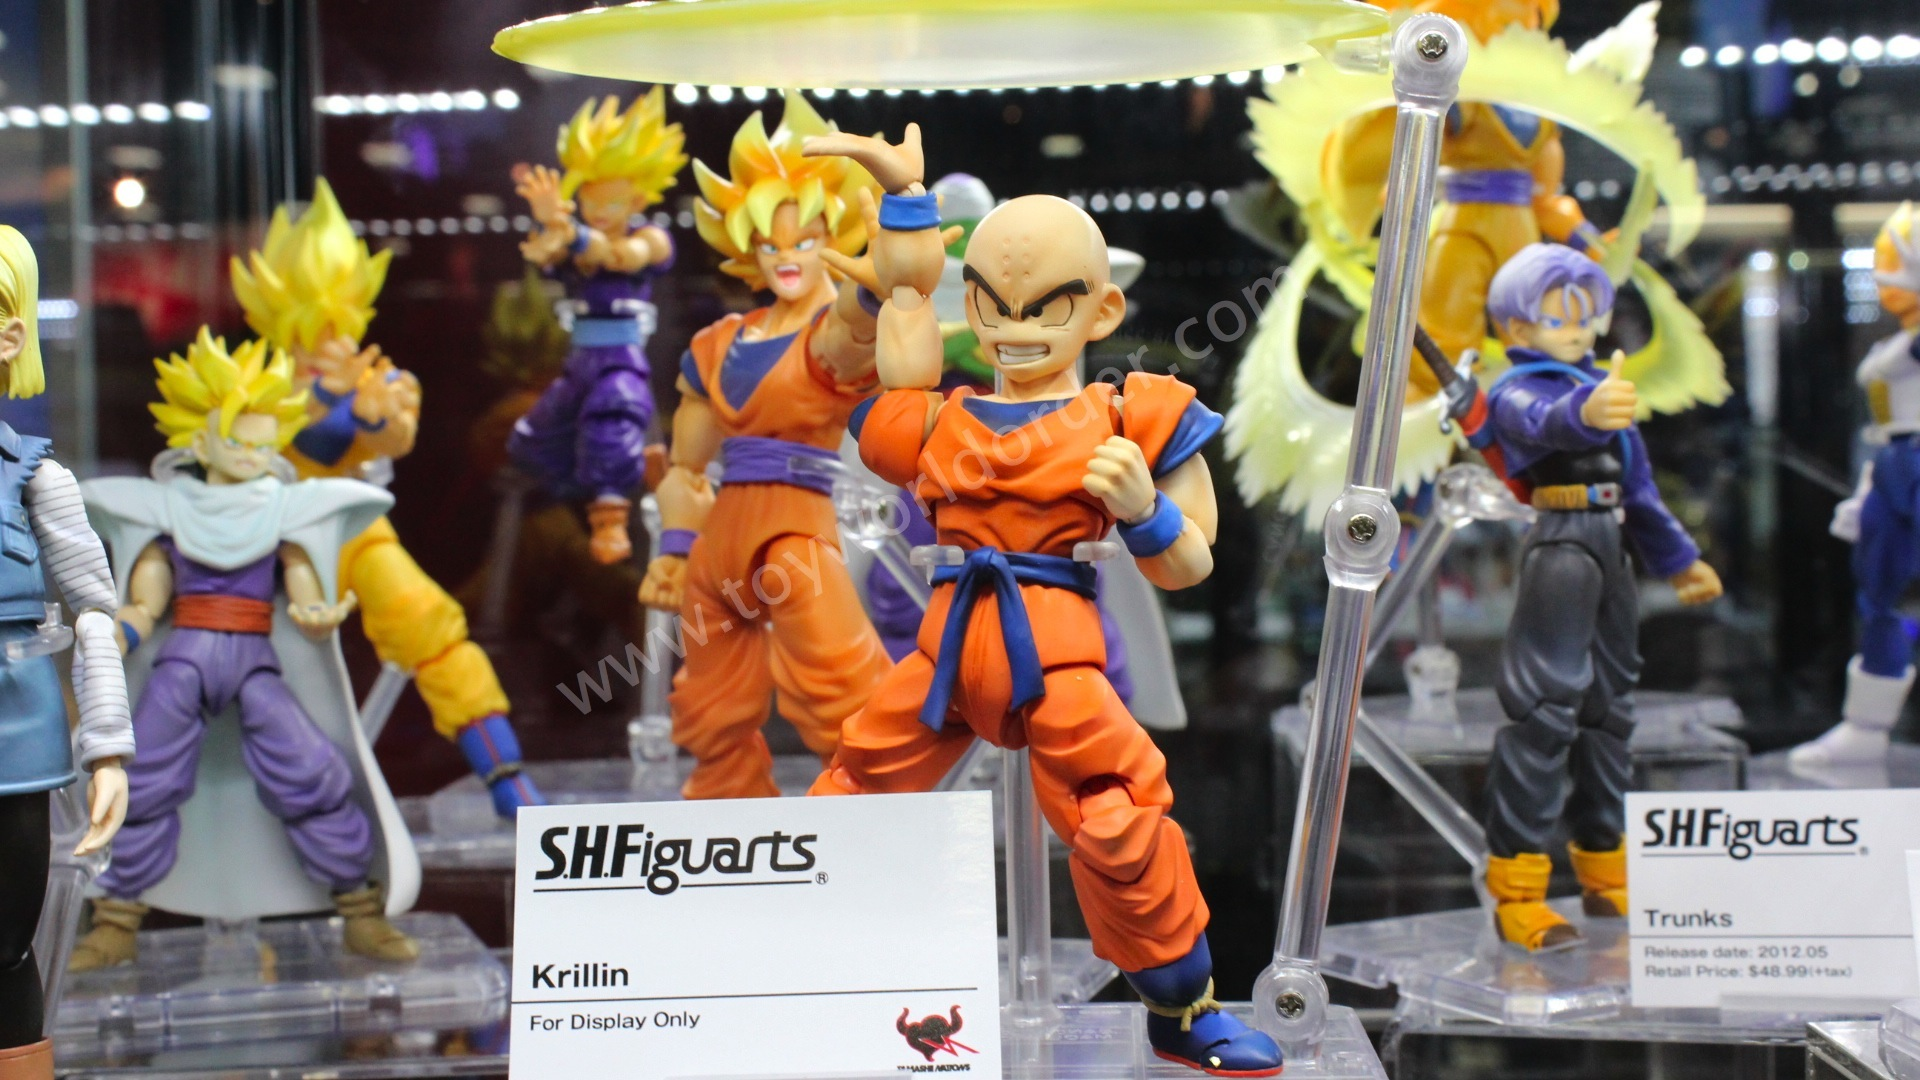 [S.H.Figuarts] Dragon Ball Z - Pagina 2 934503img6551wm